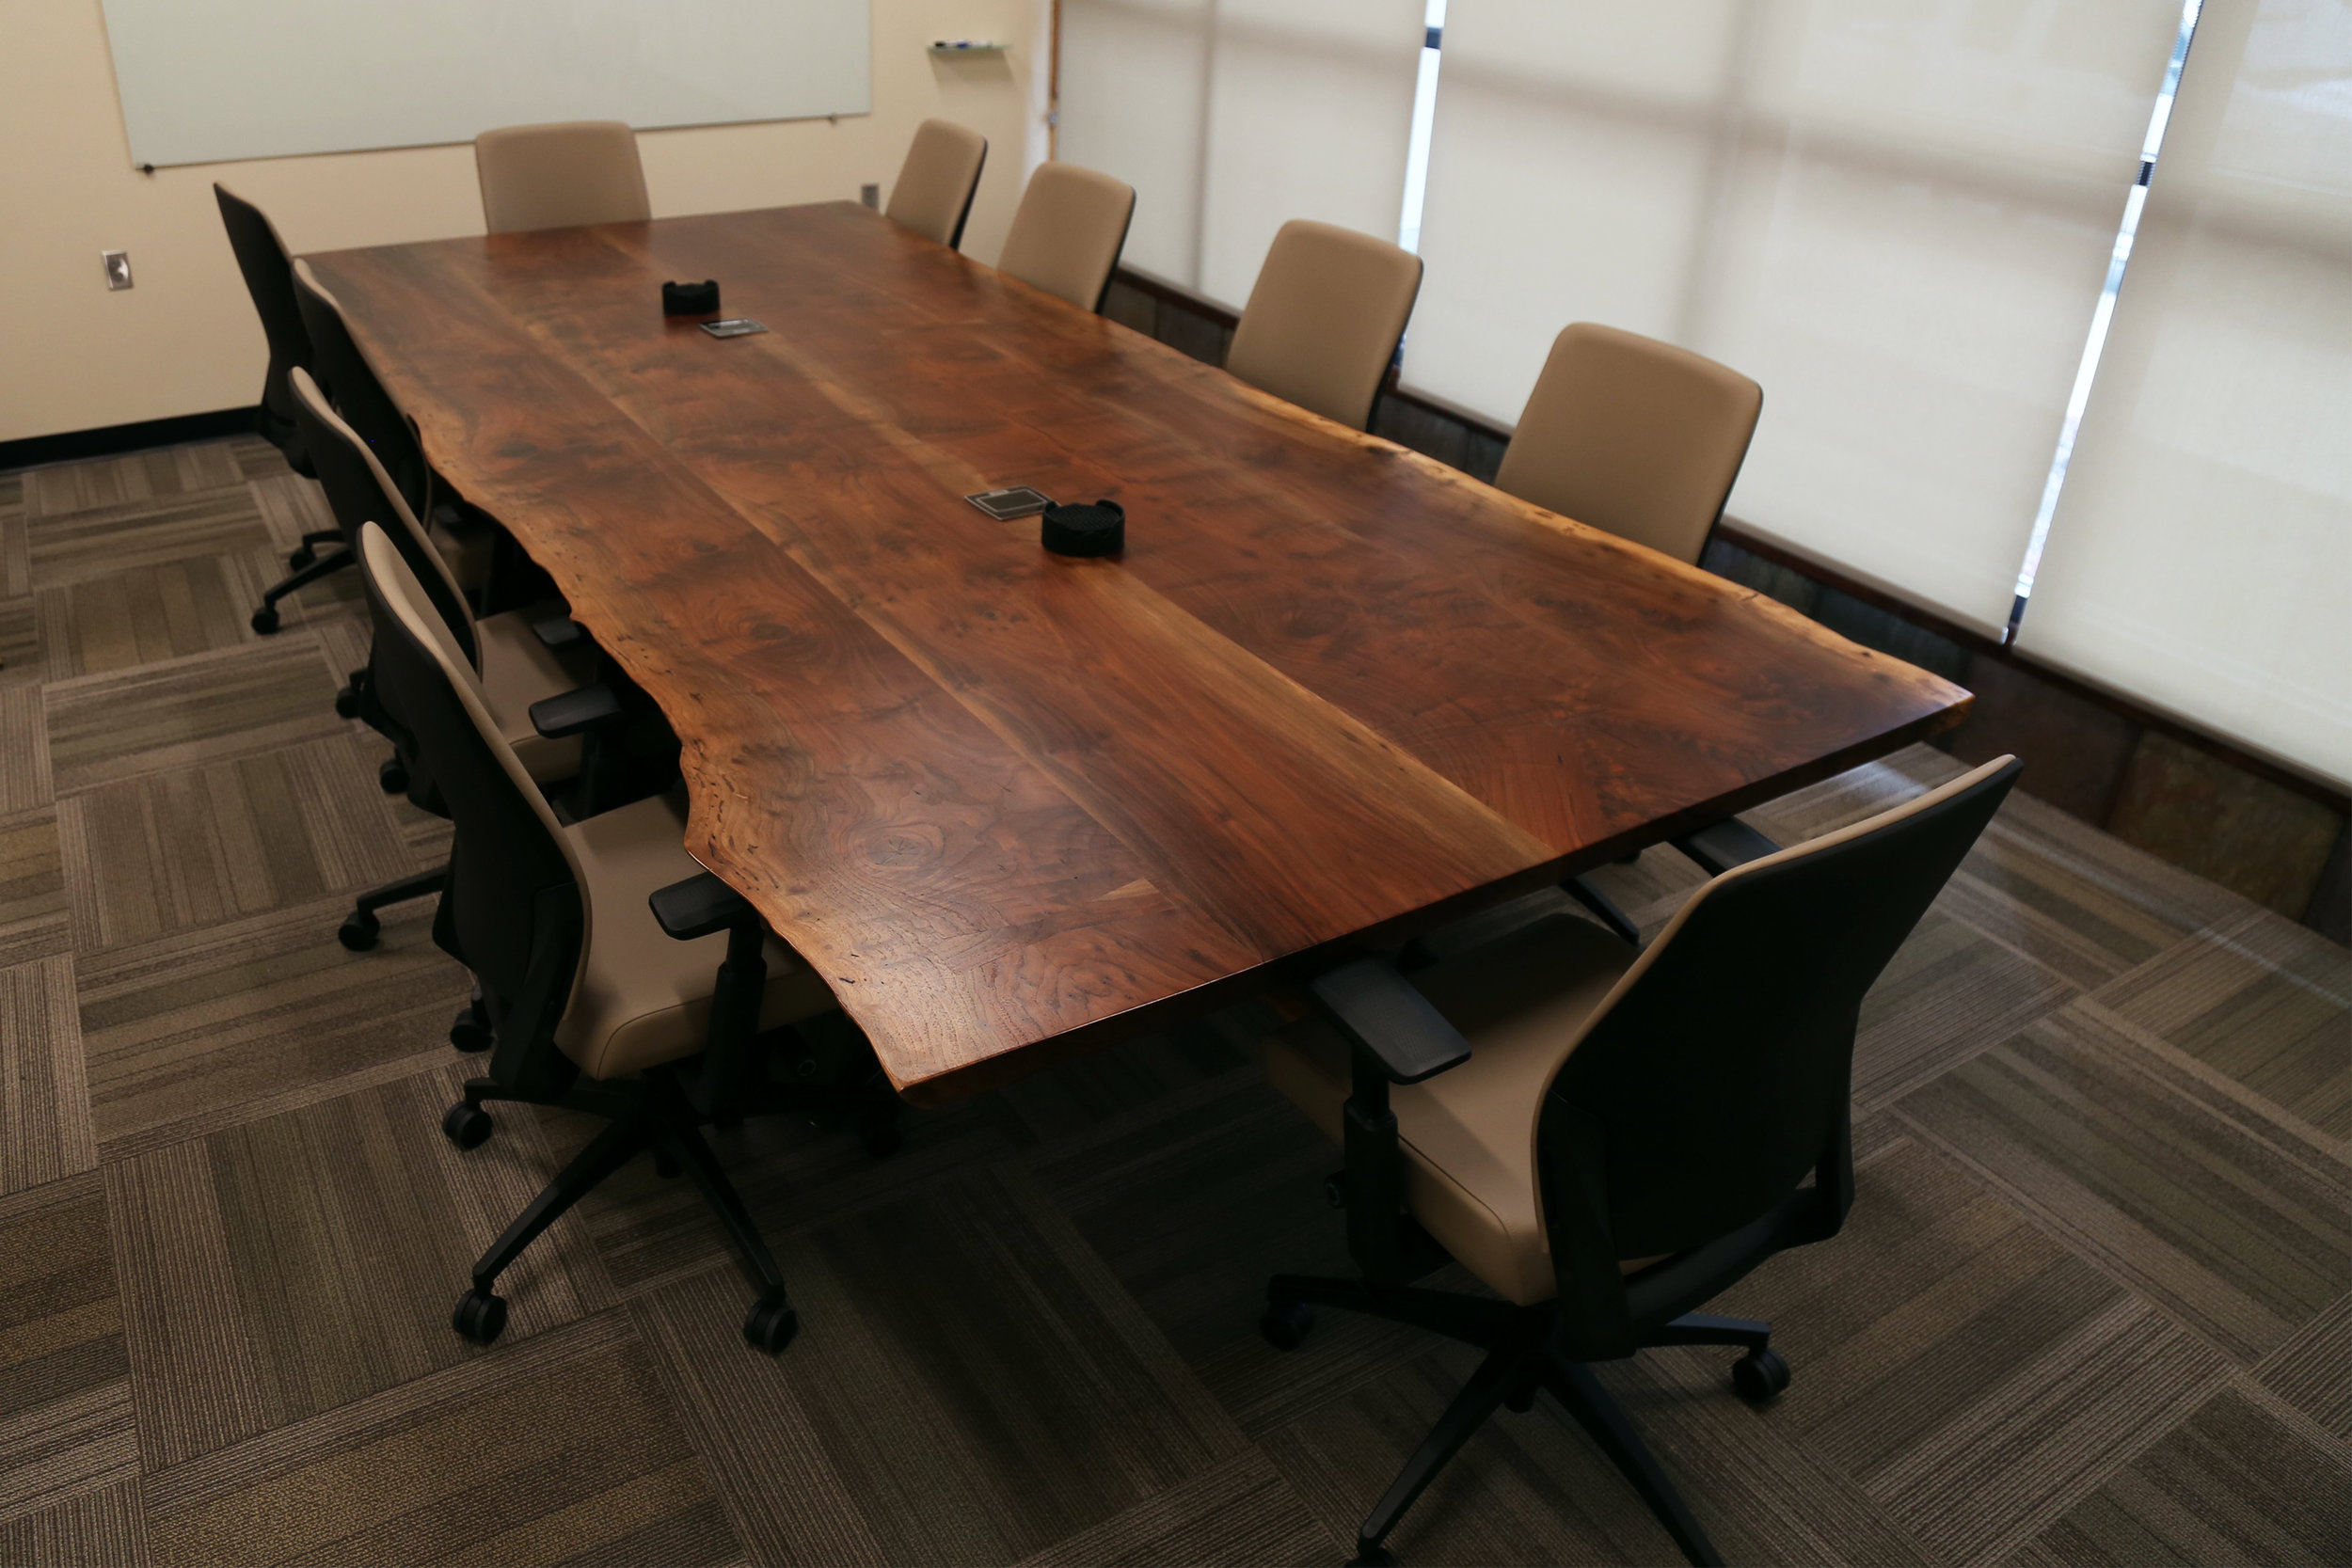 Live edge Walnut custom conference table